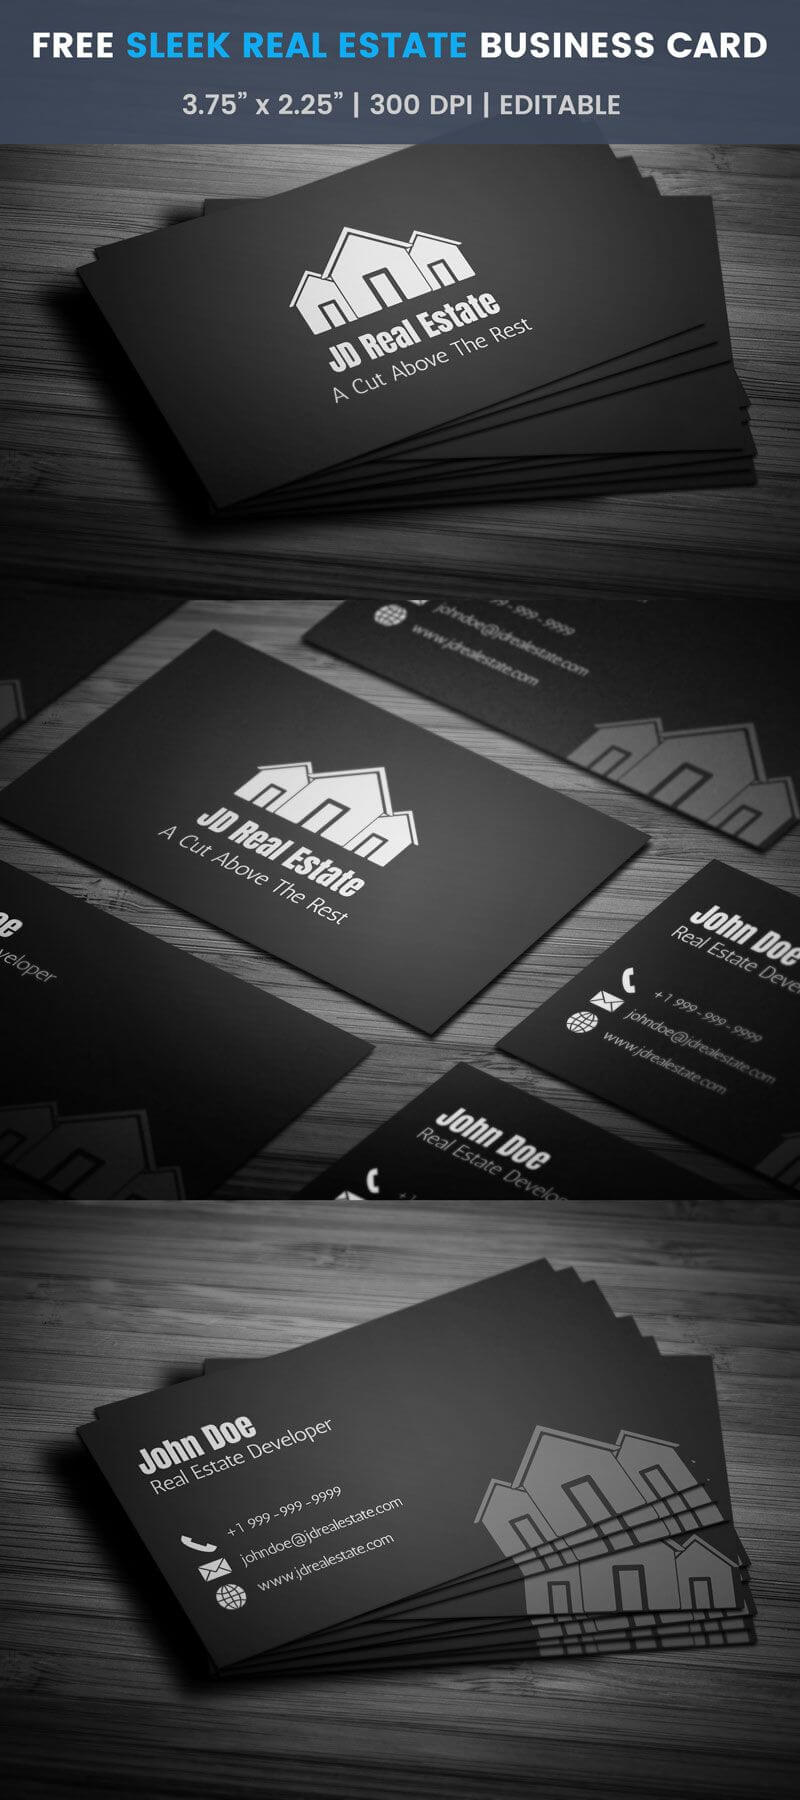 Sleek Real Estate Business Card - Full Preview | Free with Real Estate Business Cards Templates Free